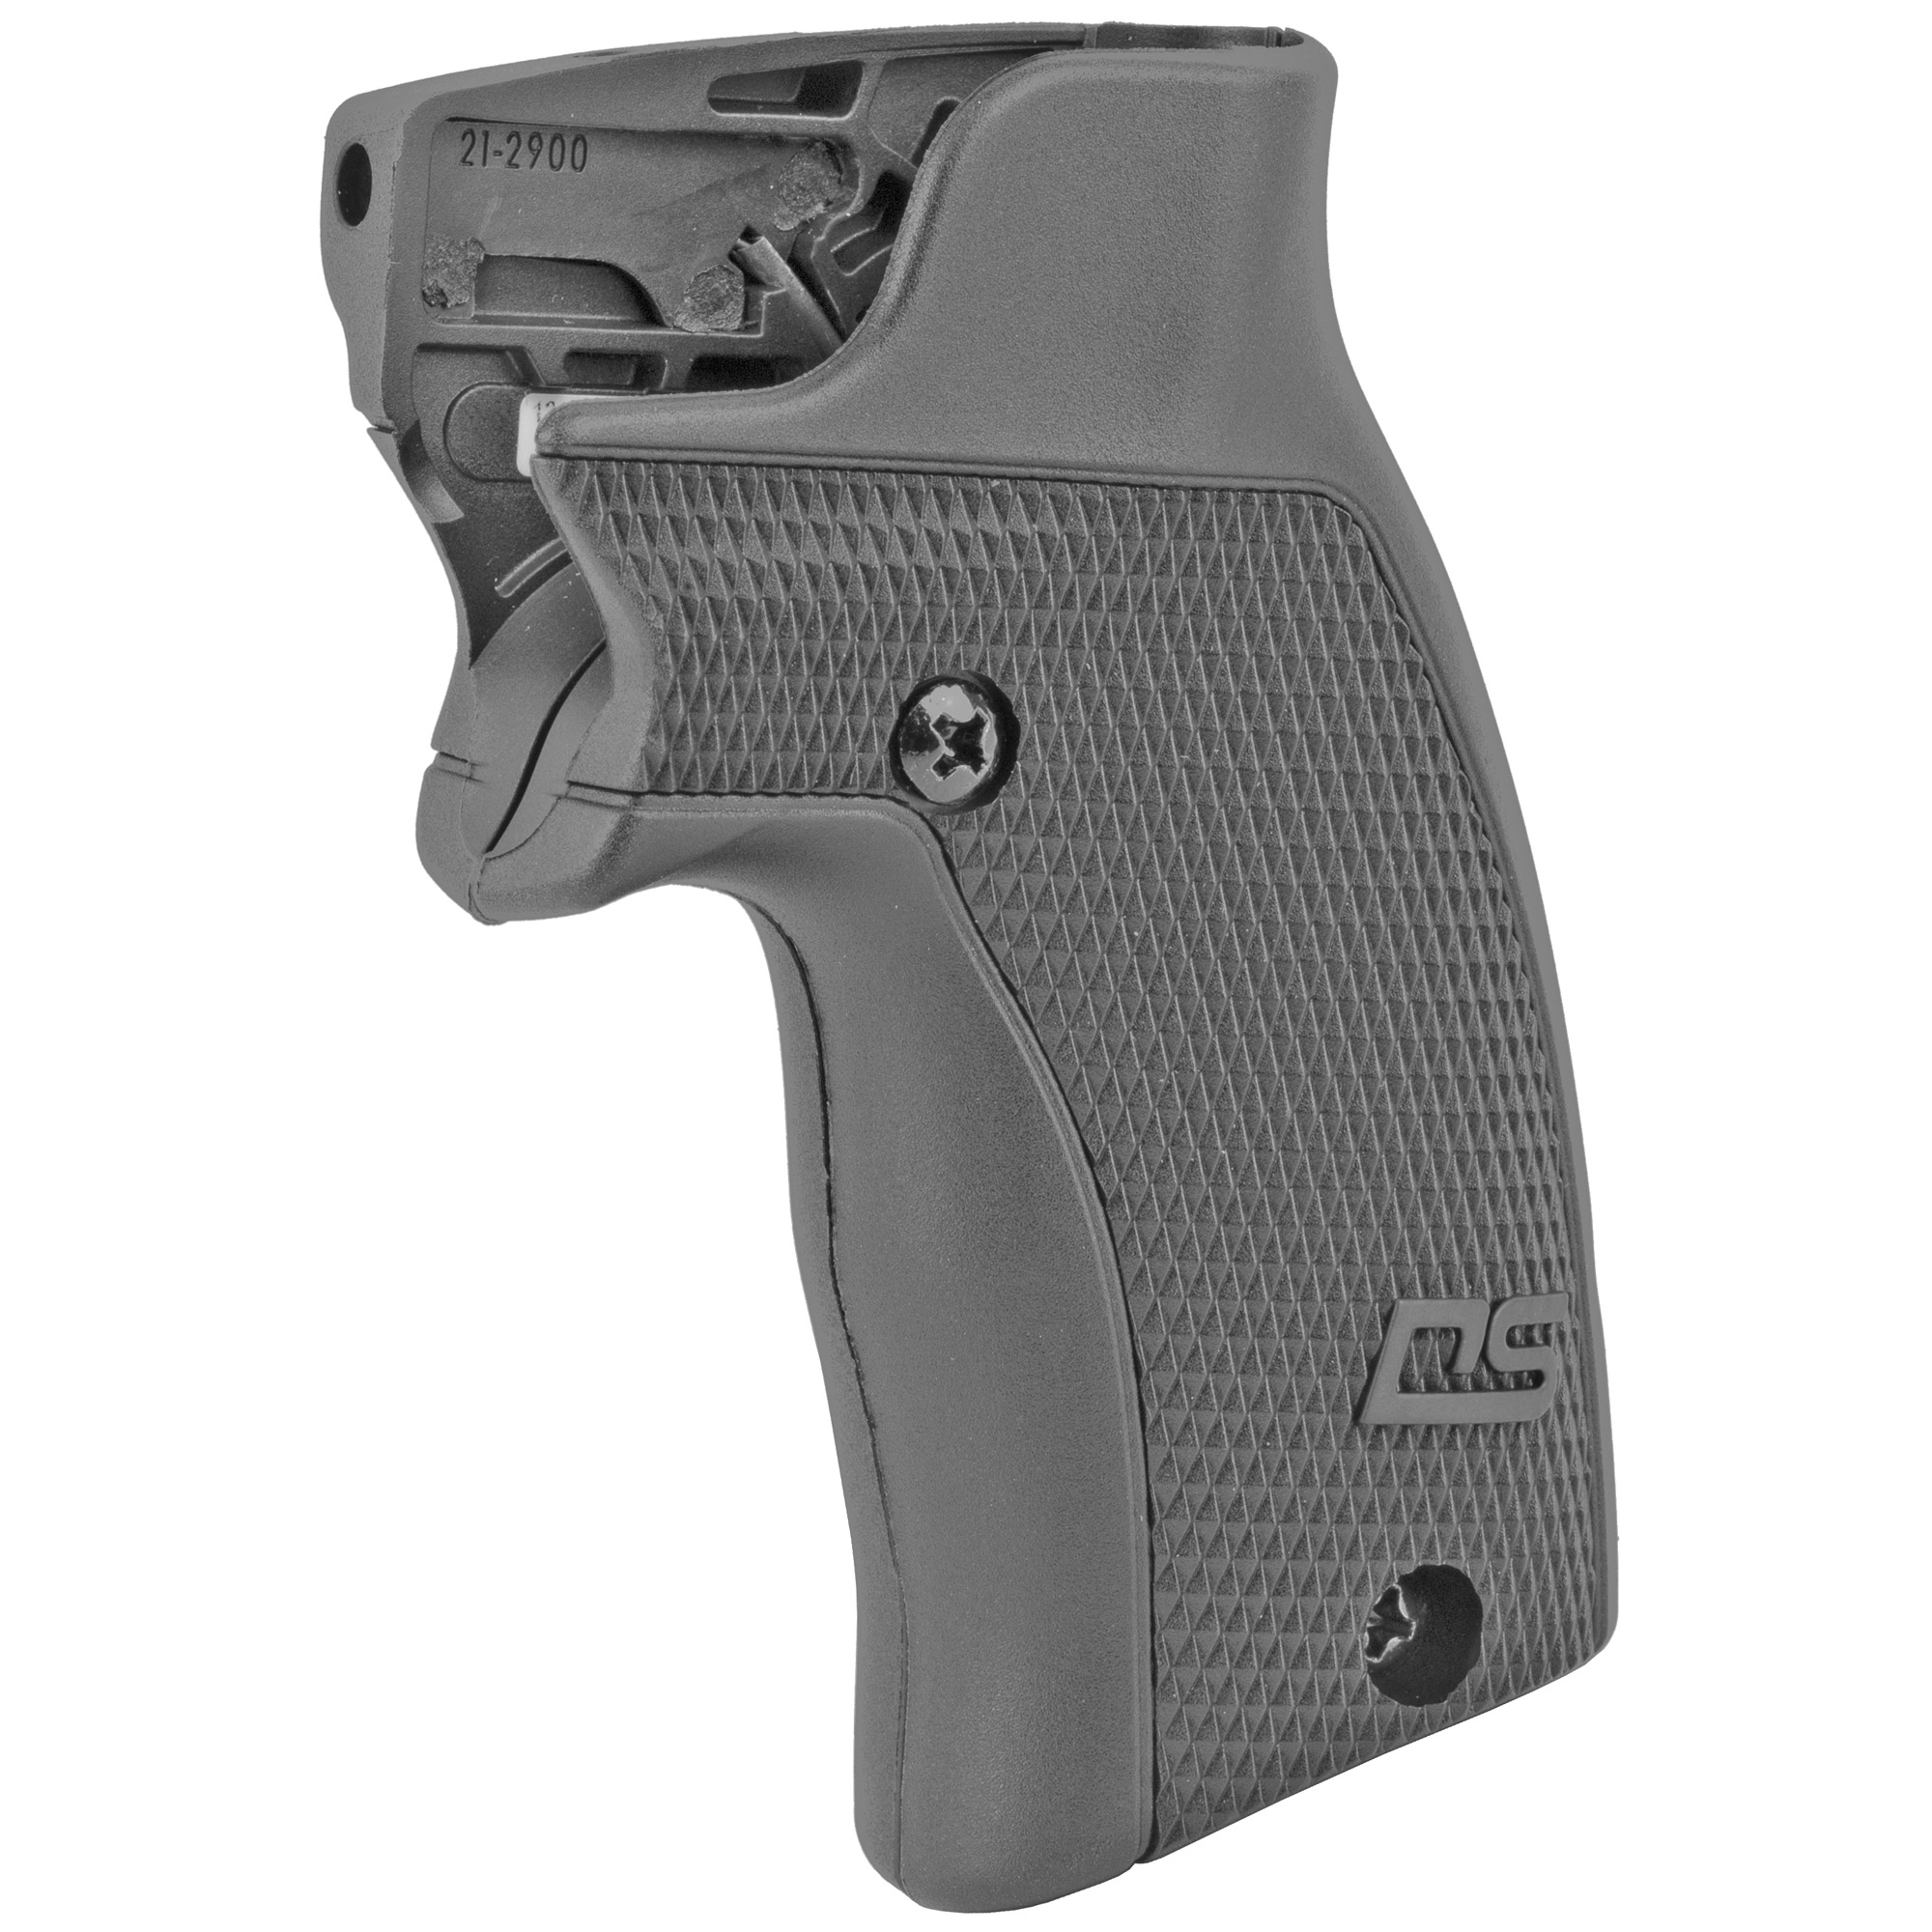 """The DS-124 Defender Series(TM) Accu-Grips(TM) Laser Sight by Crimson Trace fits Smith & Wesson J-Frame (Round Butt) and Taurus Small Frame Revolvers. The Defender Series sets a new standard in laser sighting systems by providing cutting edge design"""" superior technology"""" and an affordable price tag. The DS-124 features Beam Lock(TM) Adjustments so that the user can easily adjust laser sighting for both windage and elevation"""" and the unit is pre-sighted at the factory at 50 ft. The Top N-Gage(TM) Activation Button provide a large"""" easy-to-find"""" bright red activation button"""" which emits a powerful (5mW peak"""" 620-670nm"""" Class 3R) red aiming laser."""